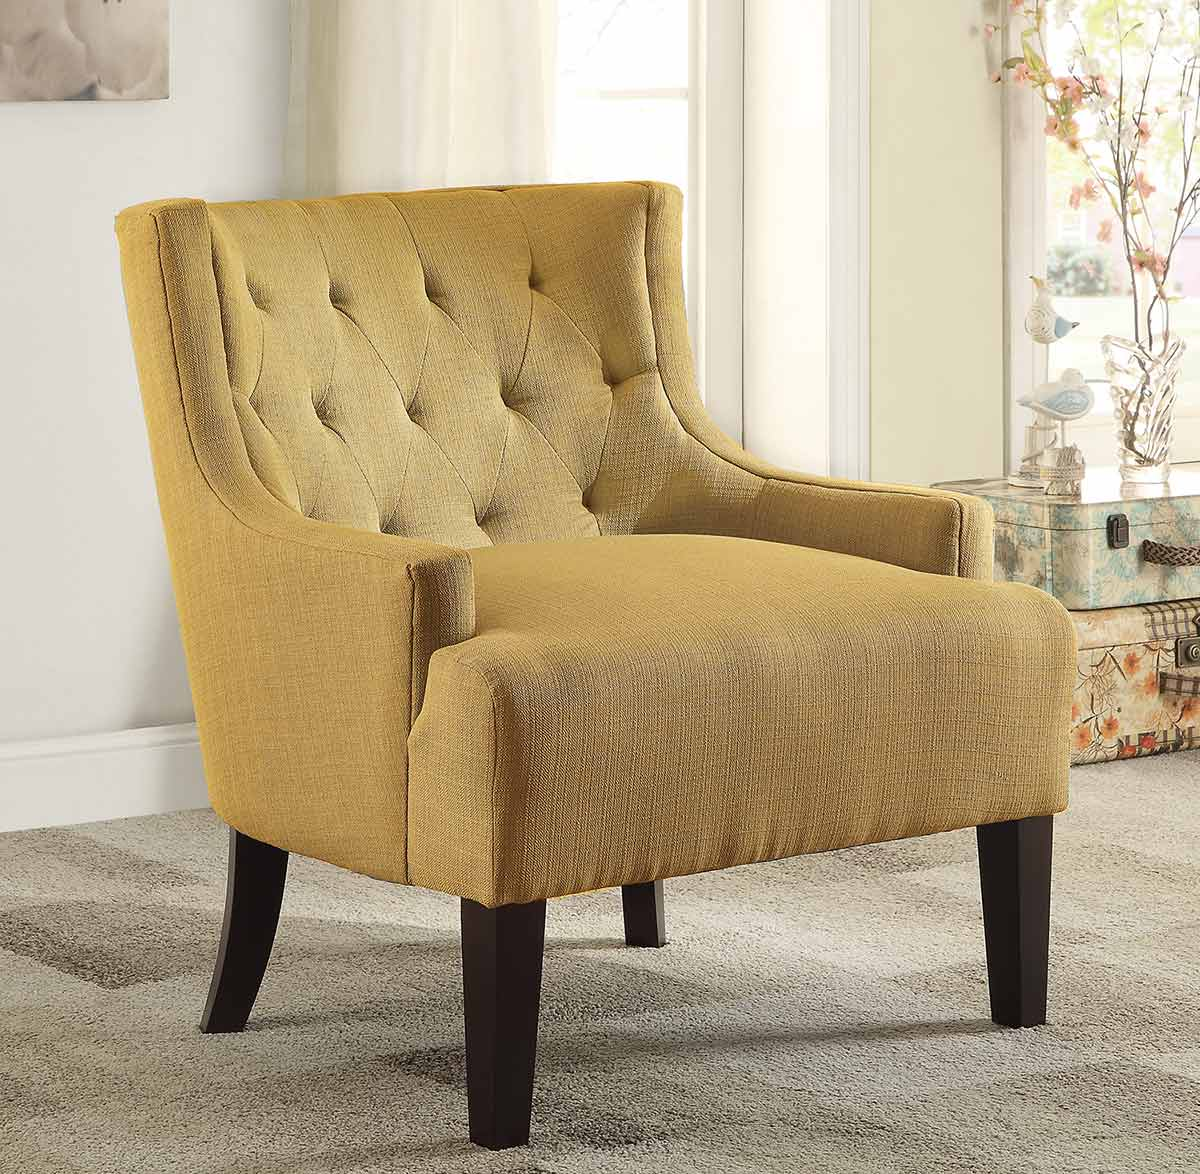 Mustard Accent Chair Homelegance Dulce Accent Chair Mustard 1233md At